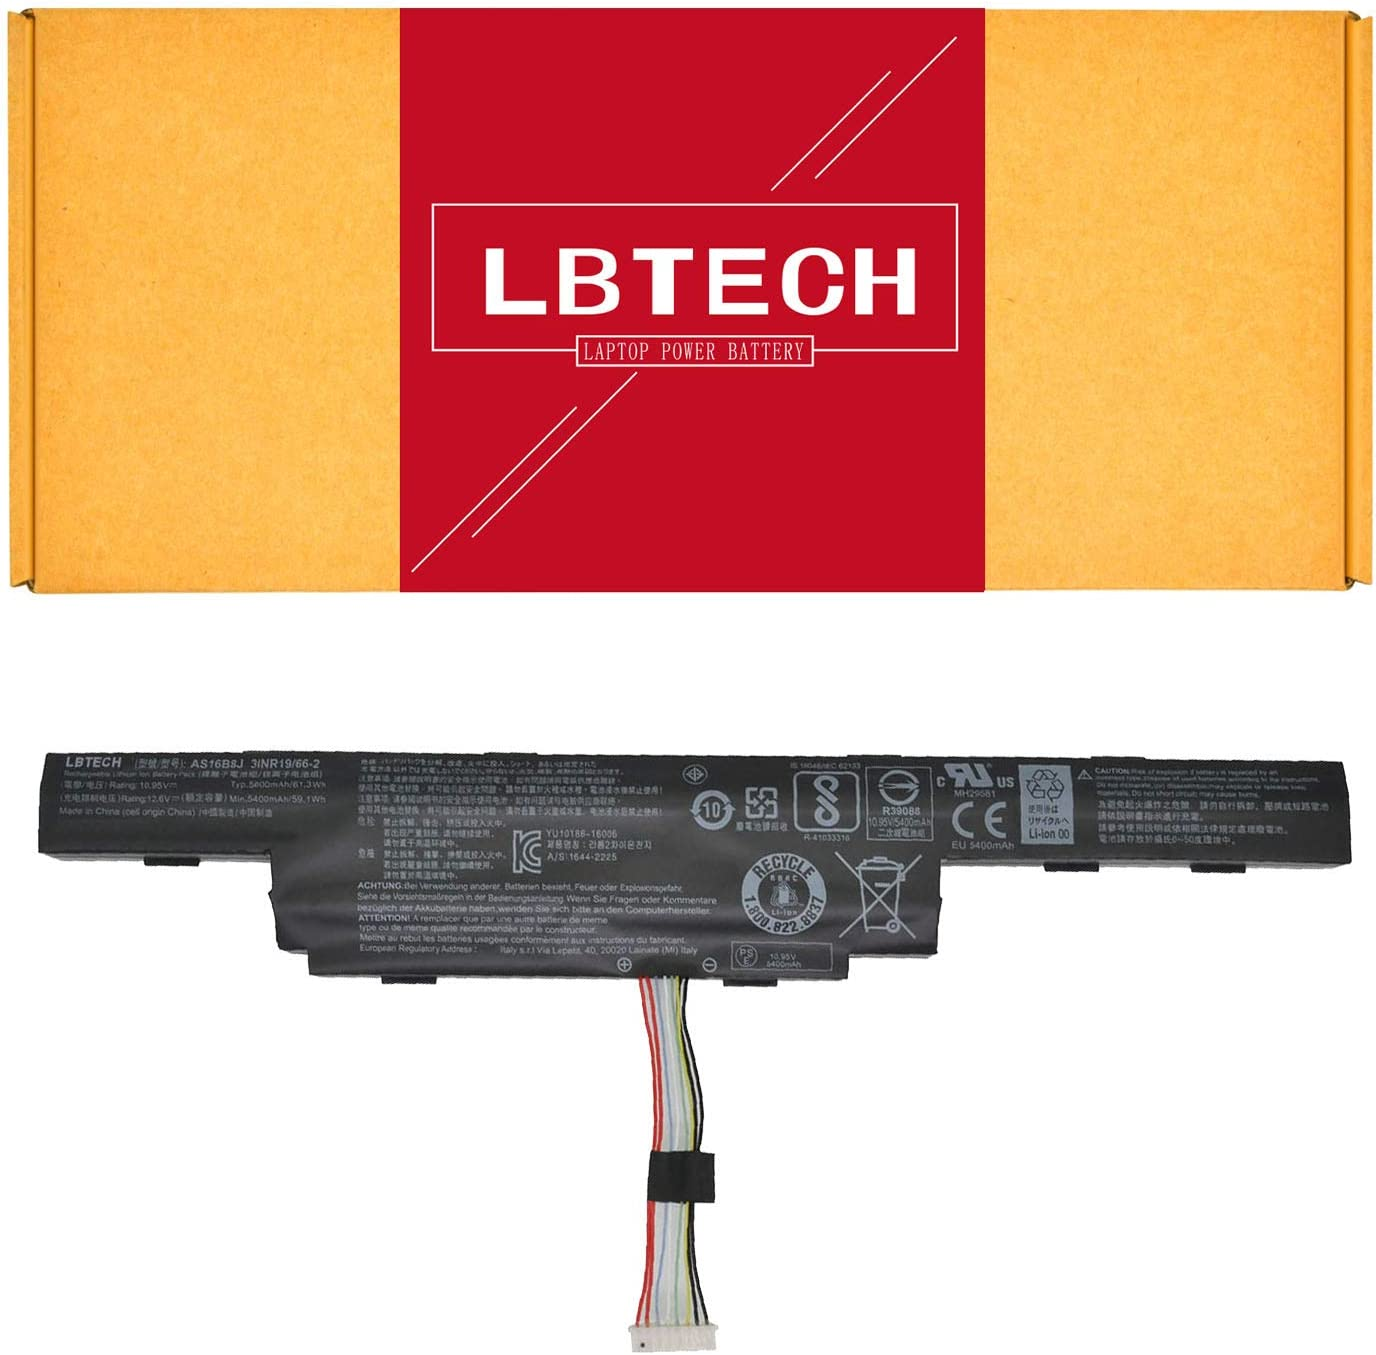 LBTECH AS16B8J AS16B5J Compatible Laptop Battery Replacement for Acer Aspire E5-575G-53VG Series Laptop 15.6